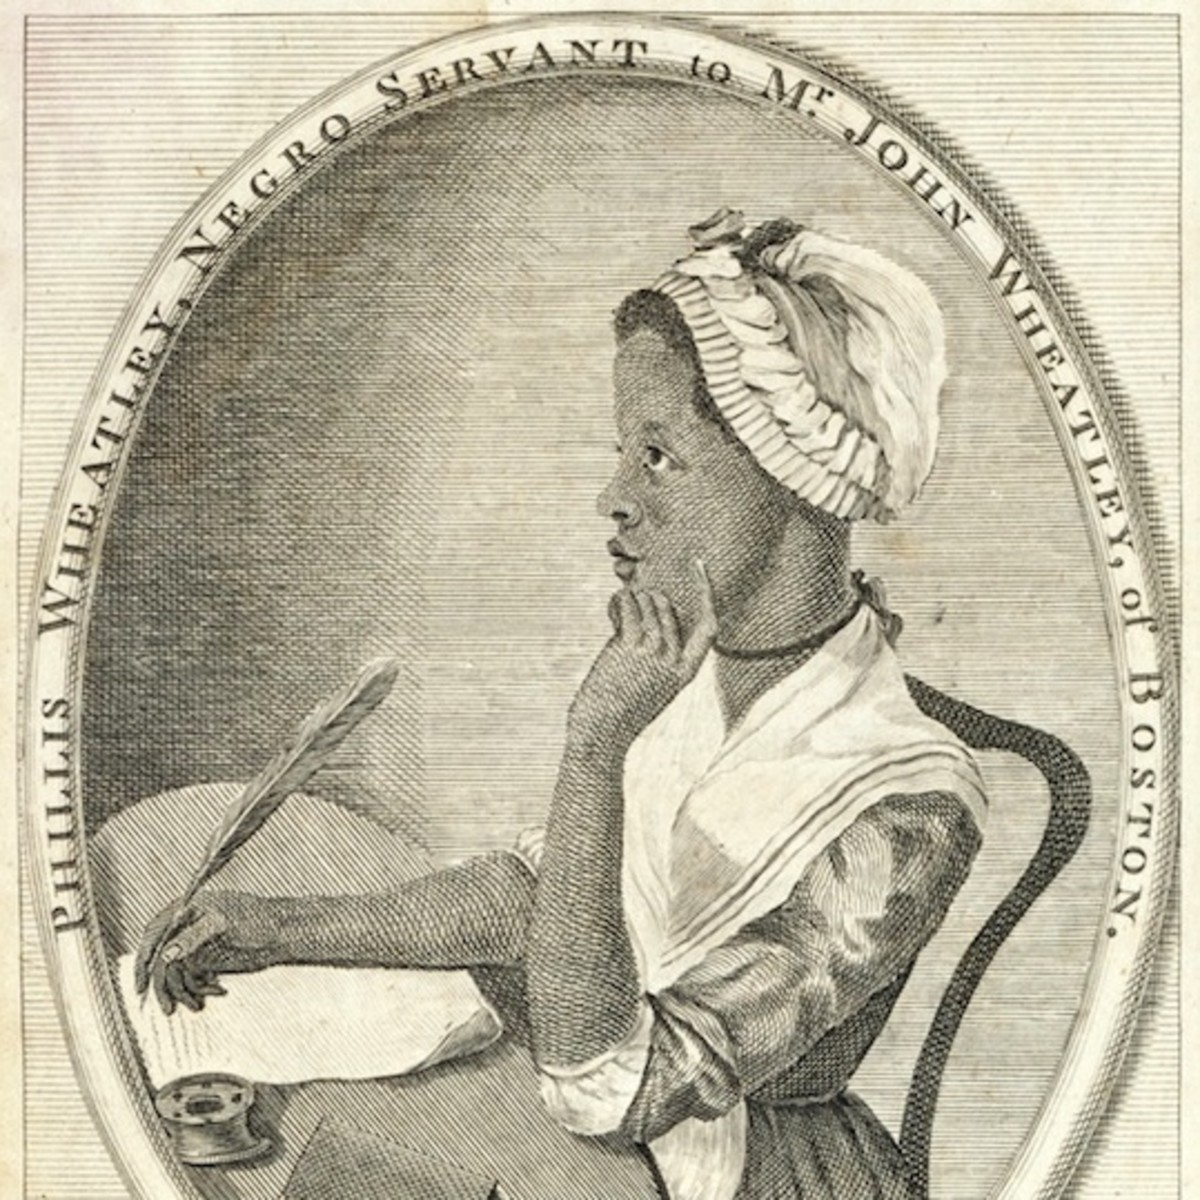 a biography of phillis wheatley from gambia africa Find and save ideas about phillis wheatley on pinterest phillis wheatley - african american poet of the born 1753 west africa (likely gambia or.